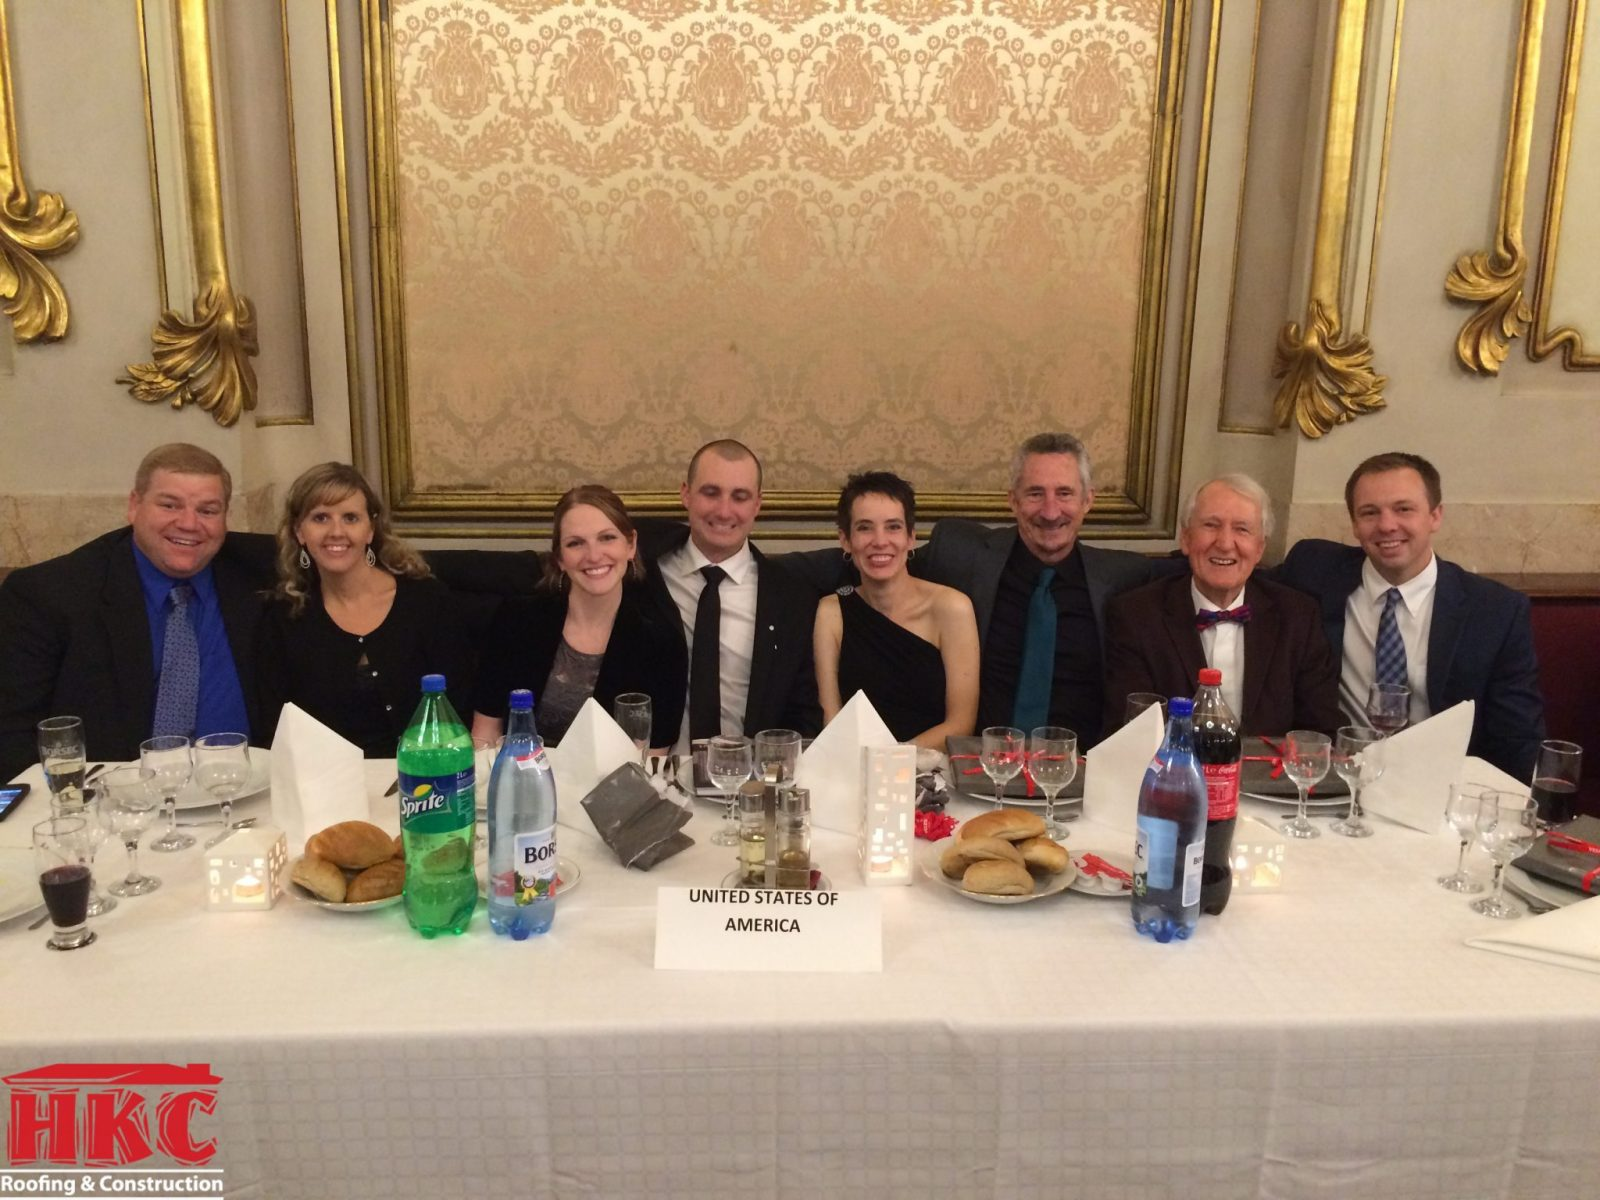 bor roofing hkc attends the 62nd international federation of